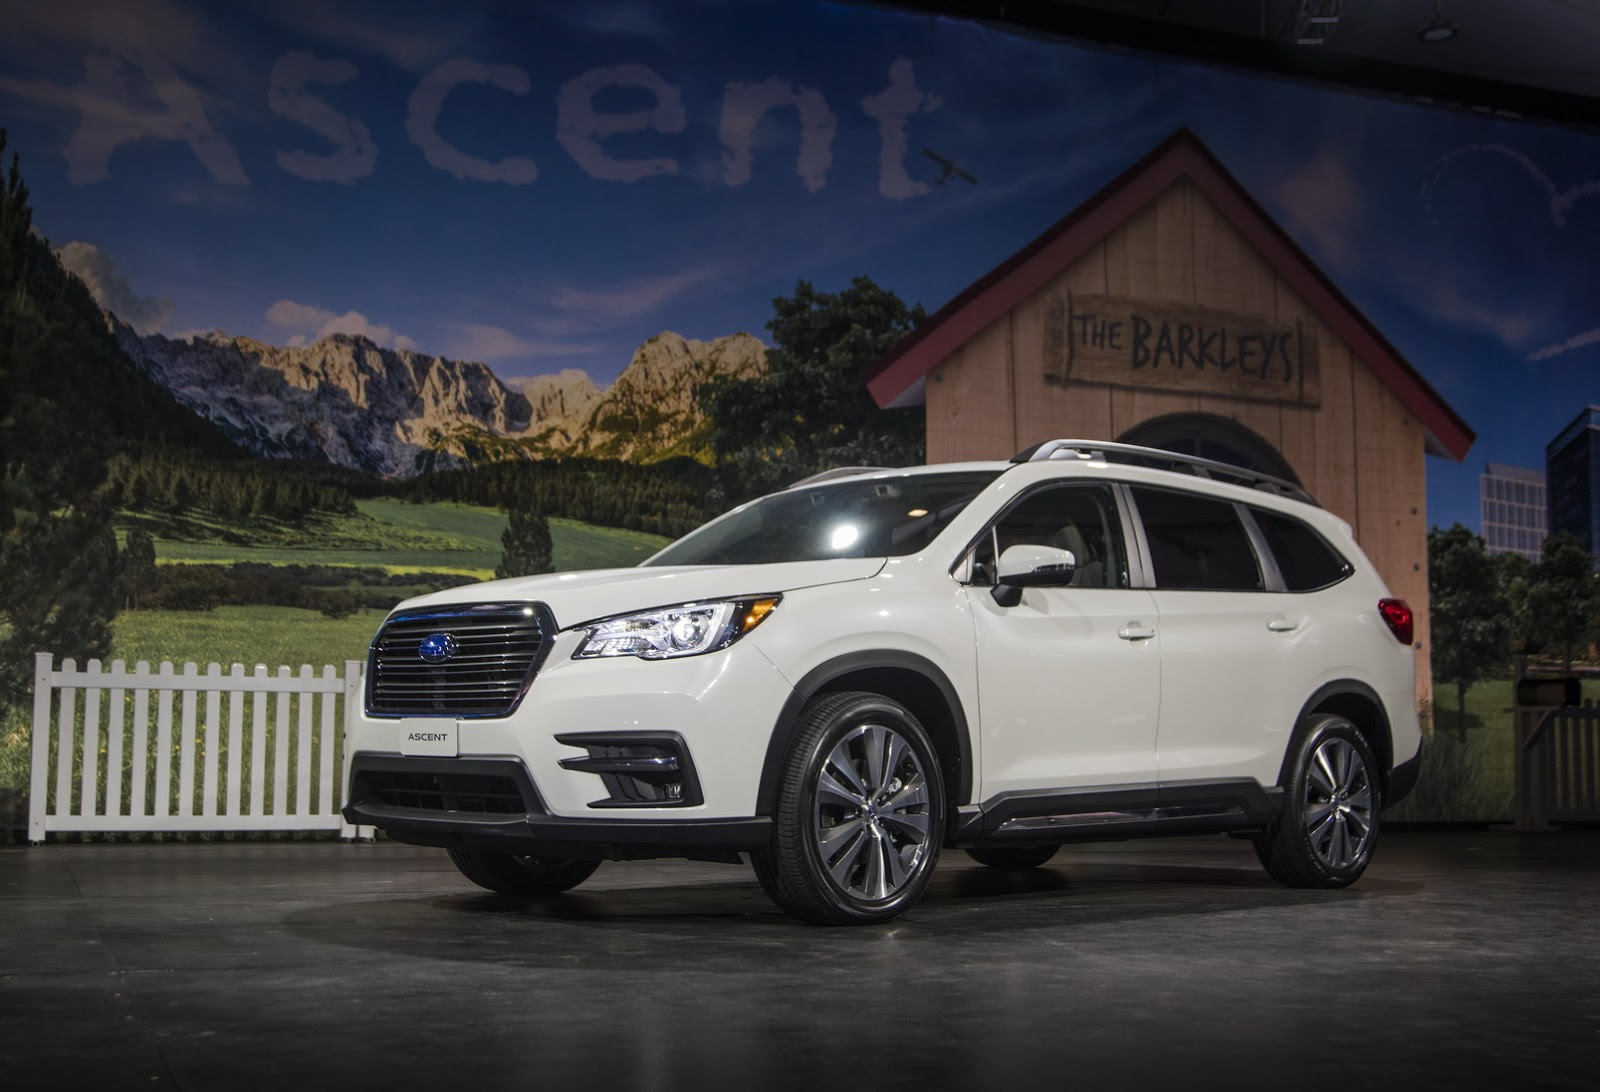 2019 Subaru Ascent Production Will Create New Jobs At ...